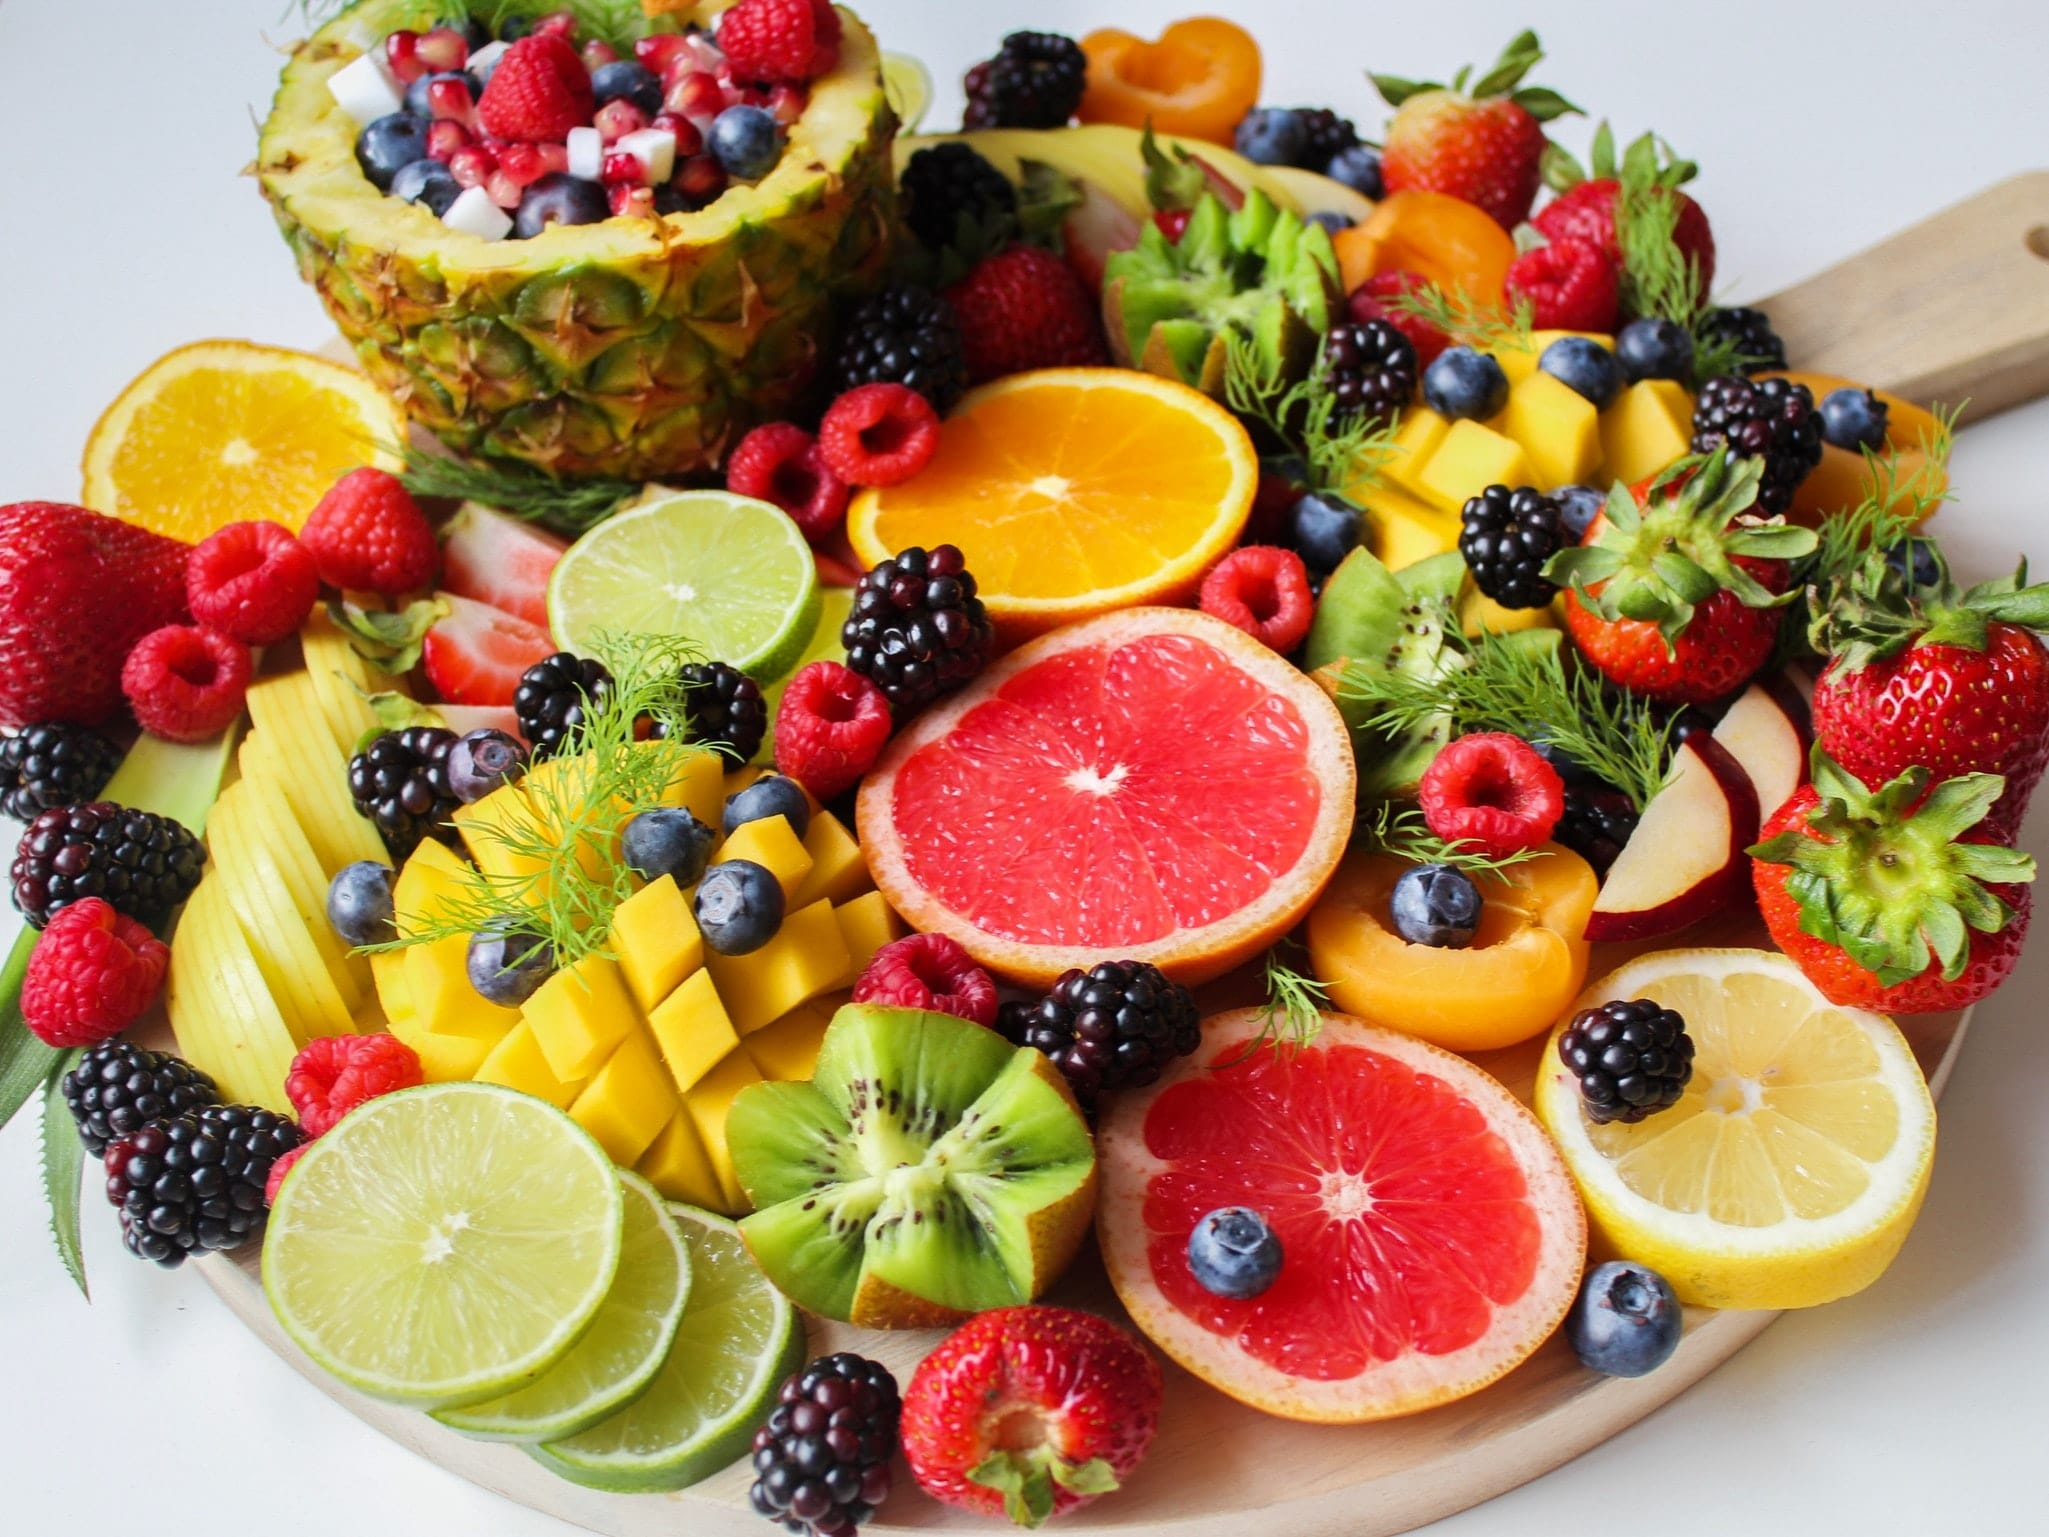 sliced-fruits-on-tray-1132047